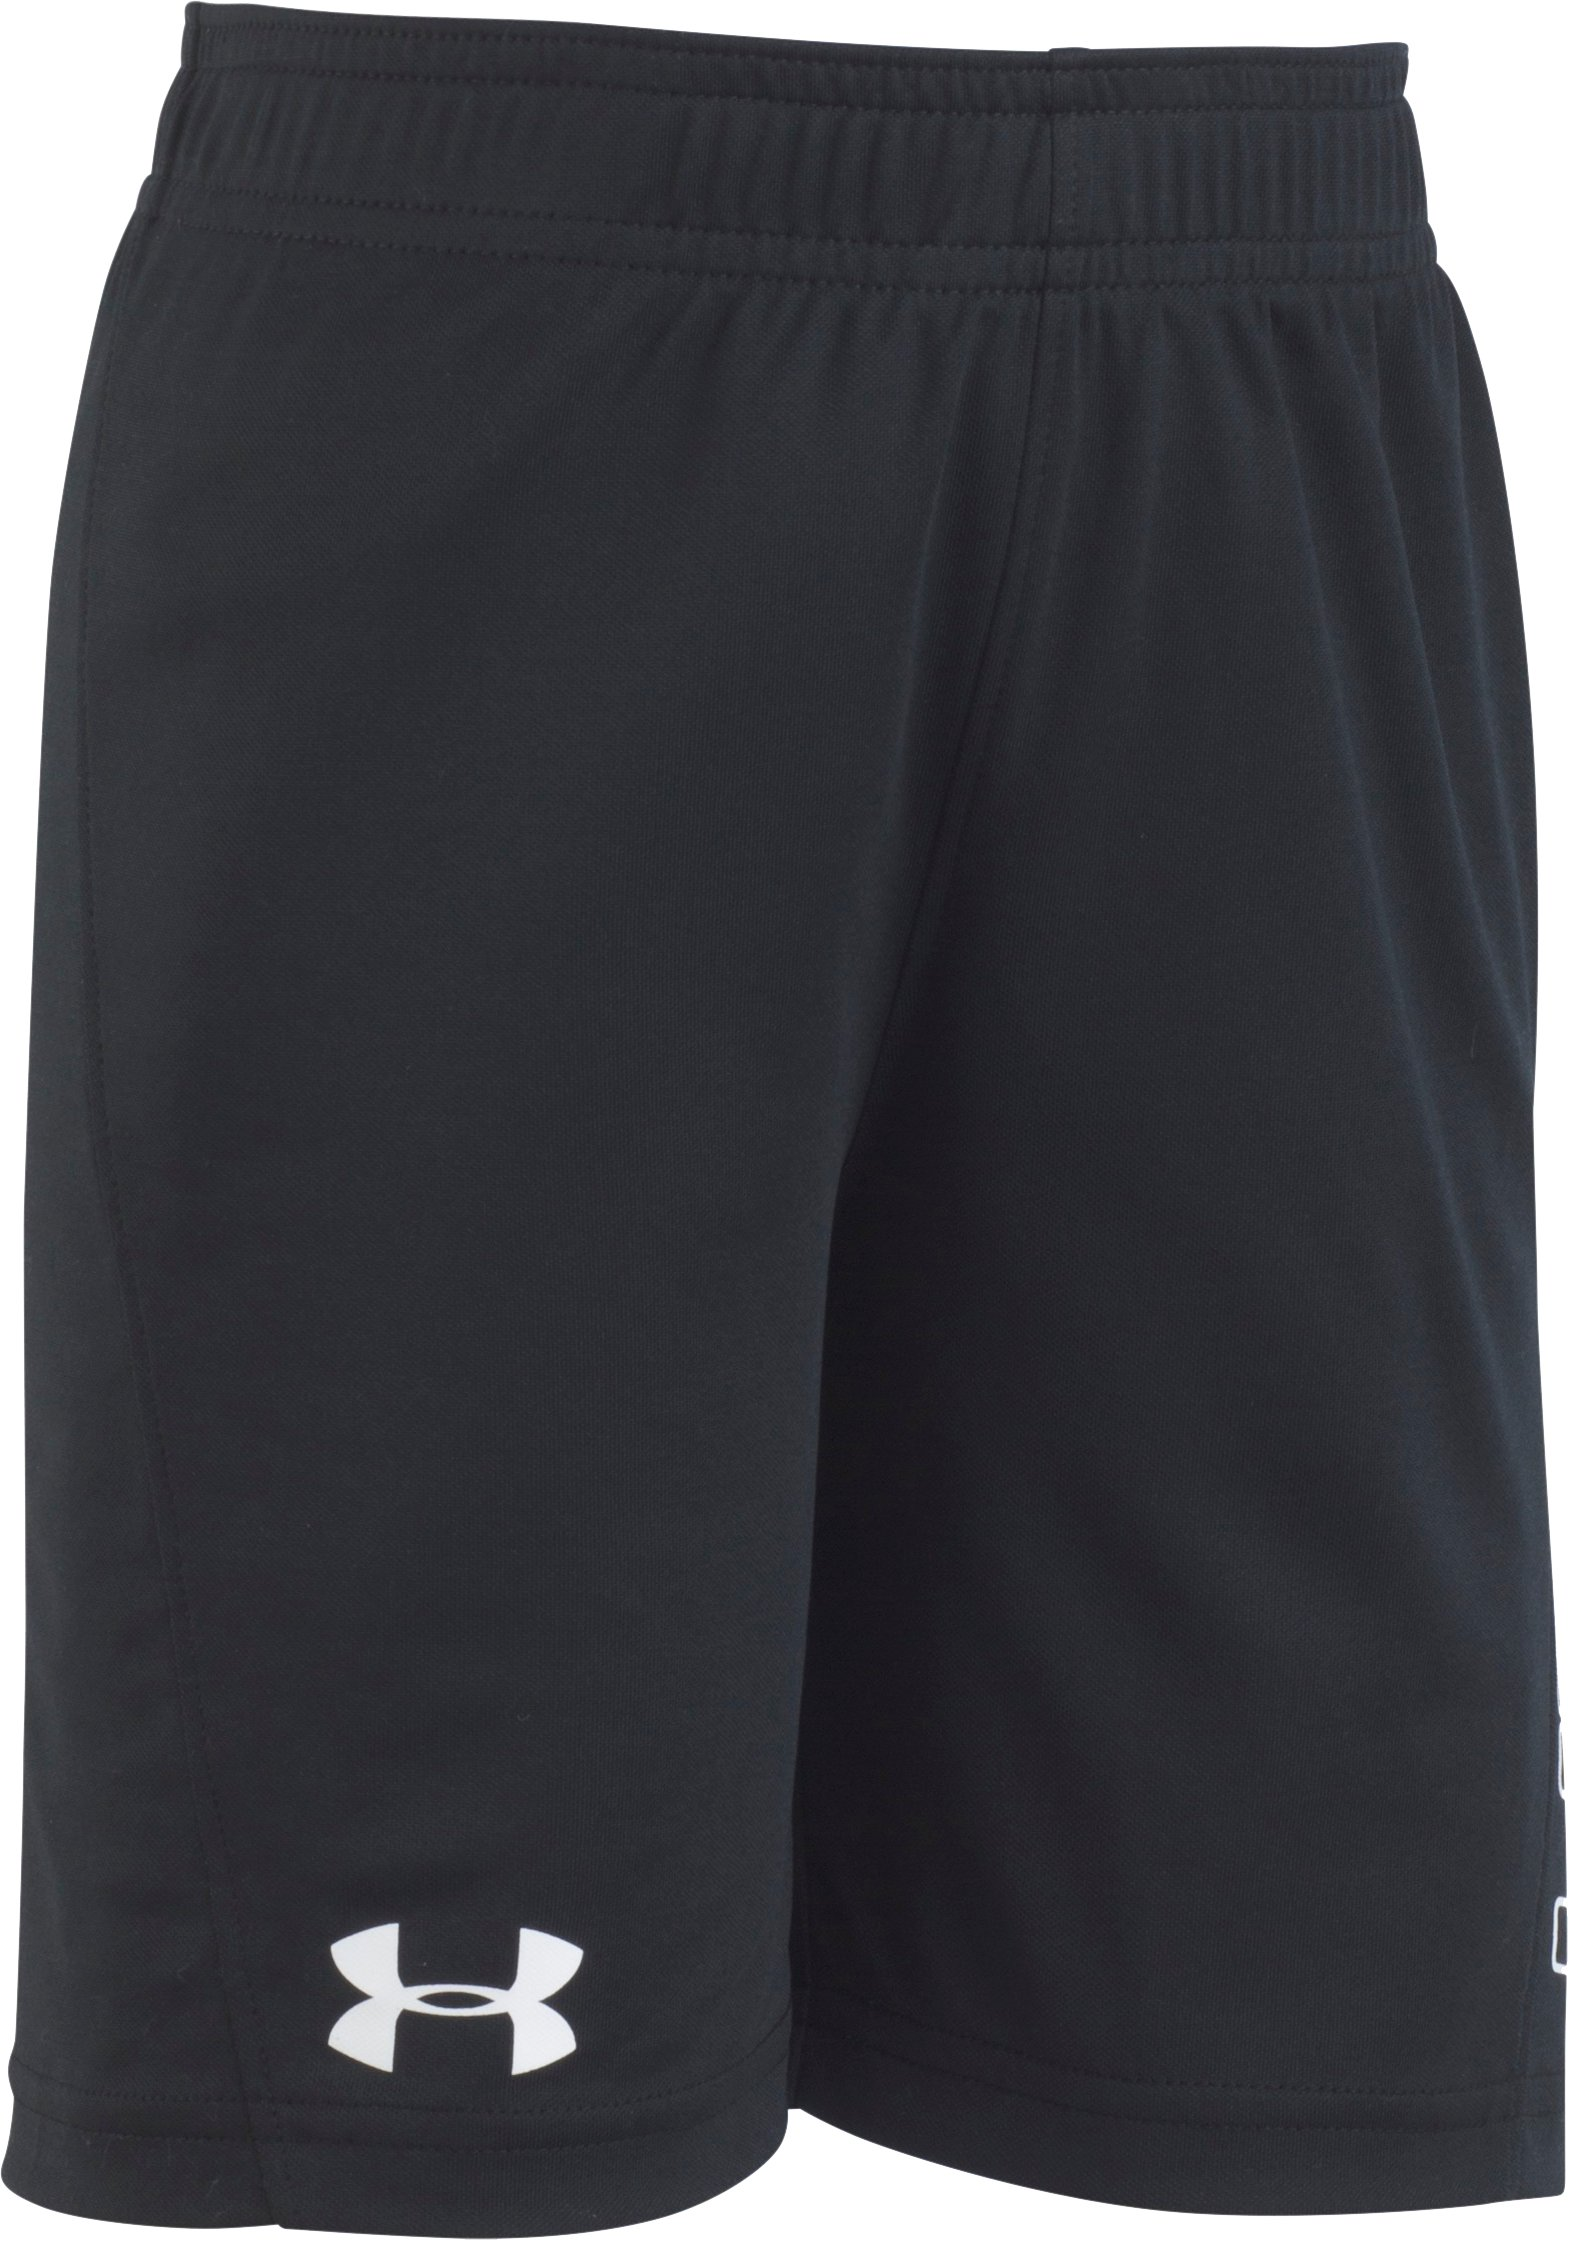 Boys' Infant UA Kick Off Solid Short , Black